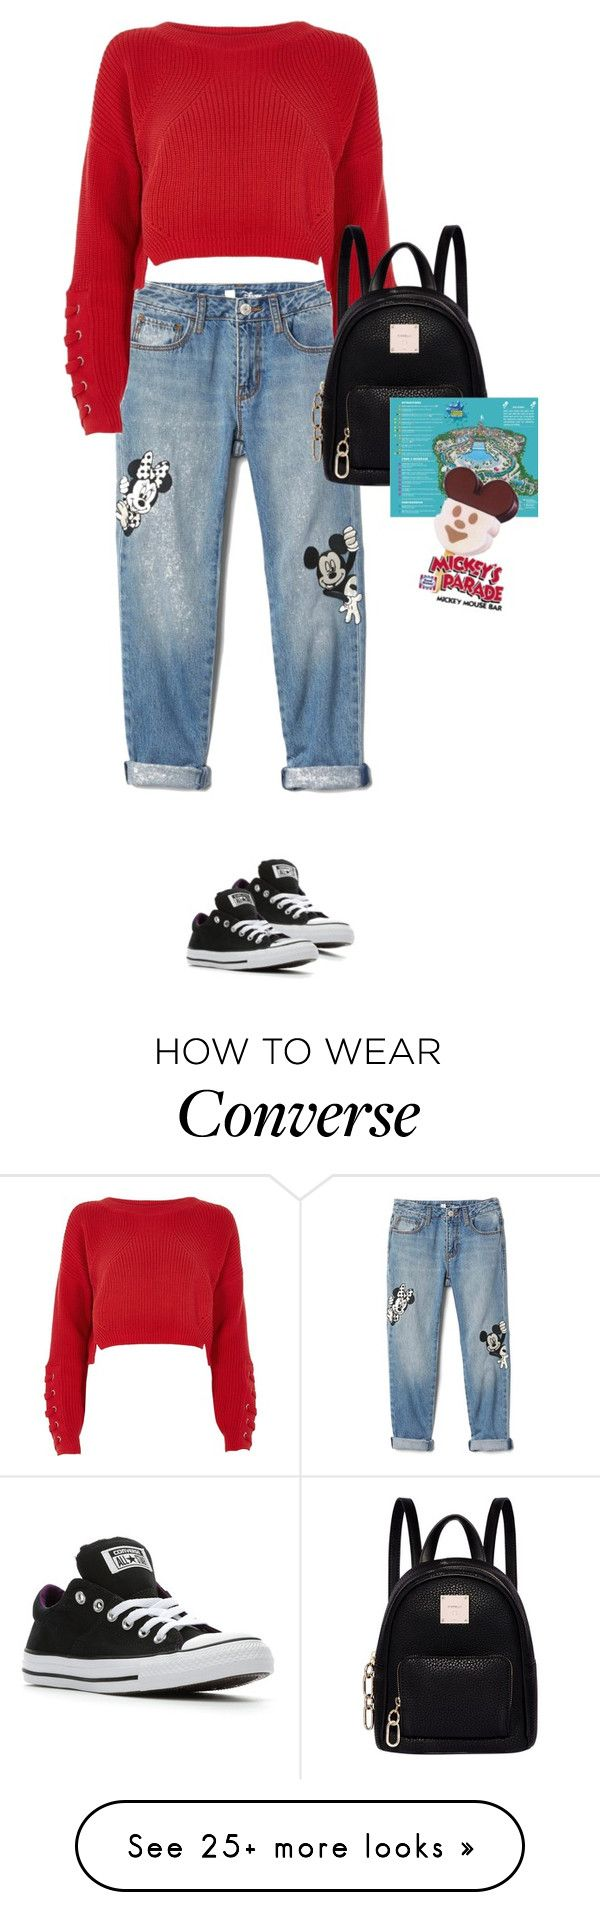 """Walt Disney World"" by mimas-style on Polyvore featuring Disney, River Island, Fiorelli and Converse"